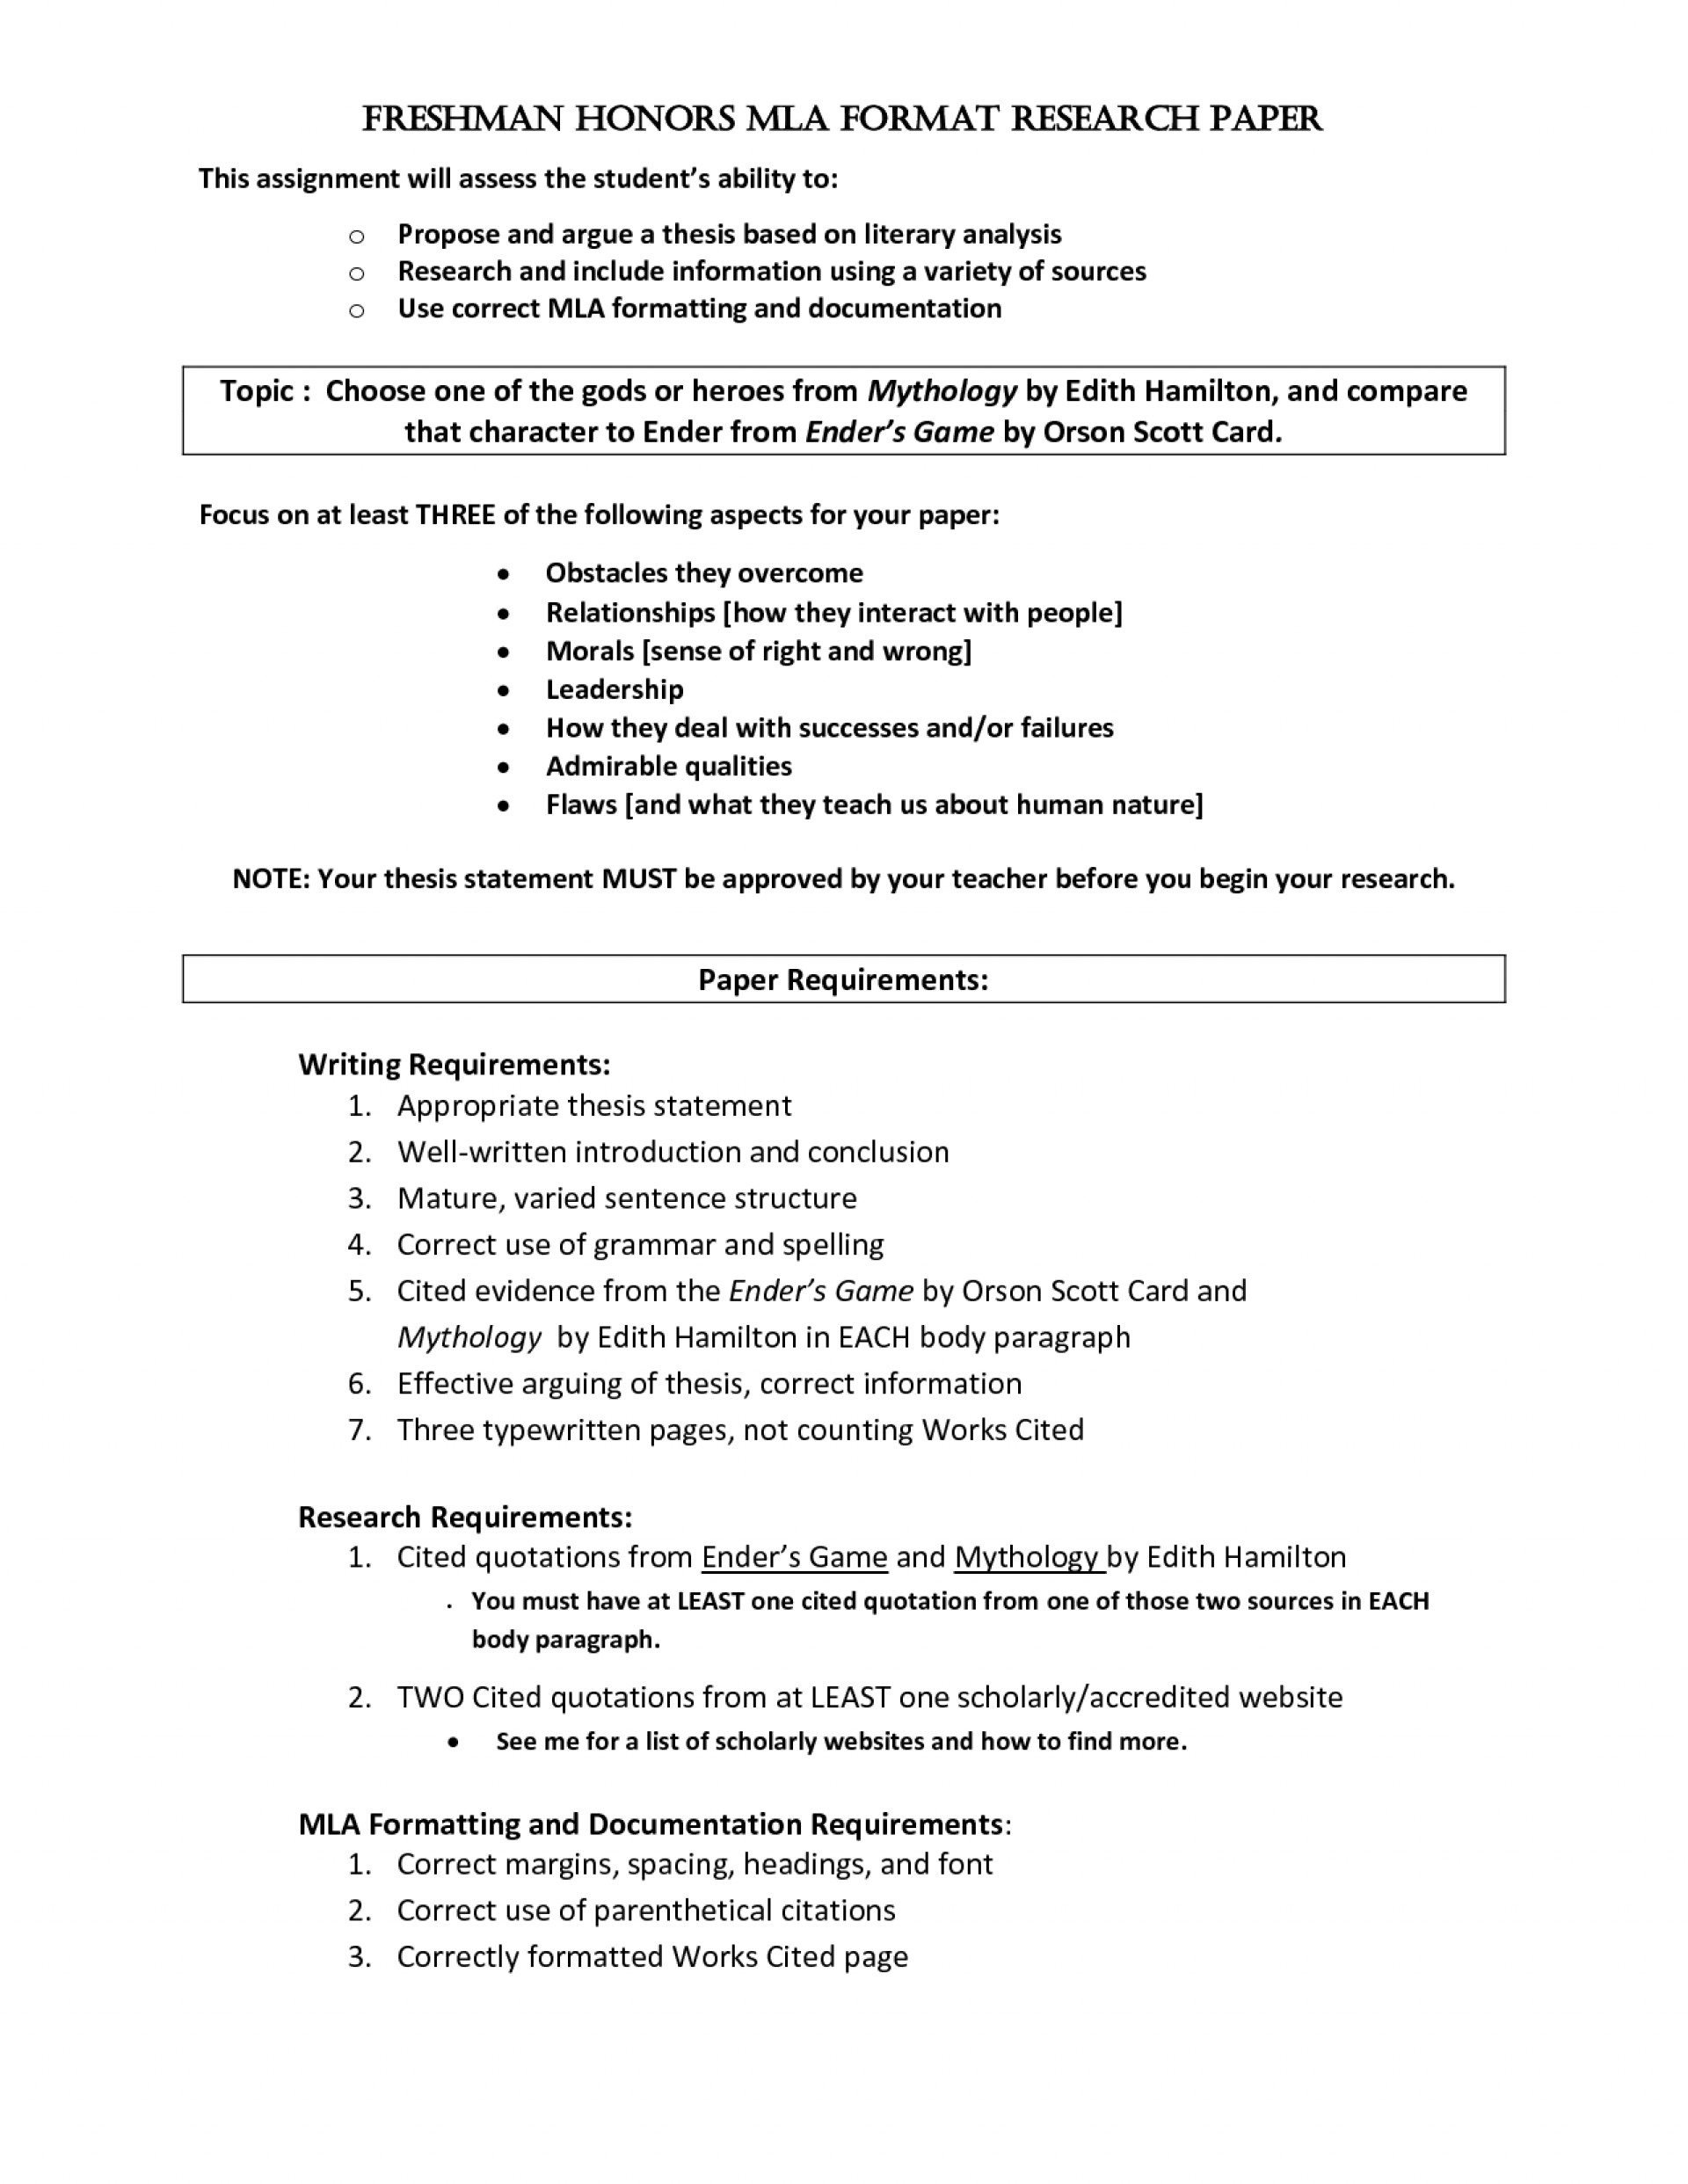 020 How Do You Write Research Paper In Mla Format Bunch Ideas Ofsal Example Essay Sample Template Writing Imposing A To Step By Examples 1920